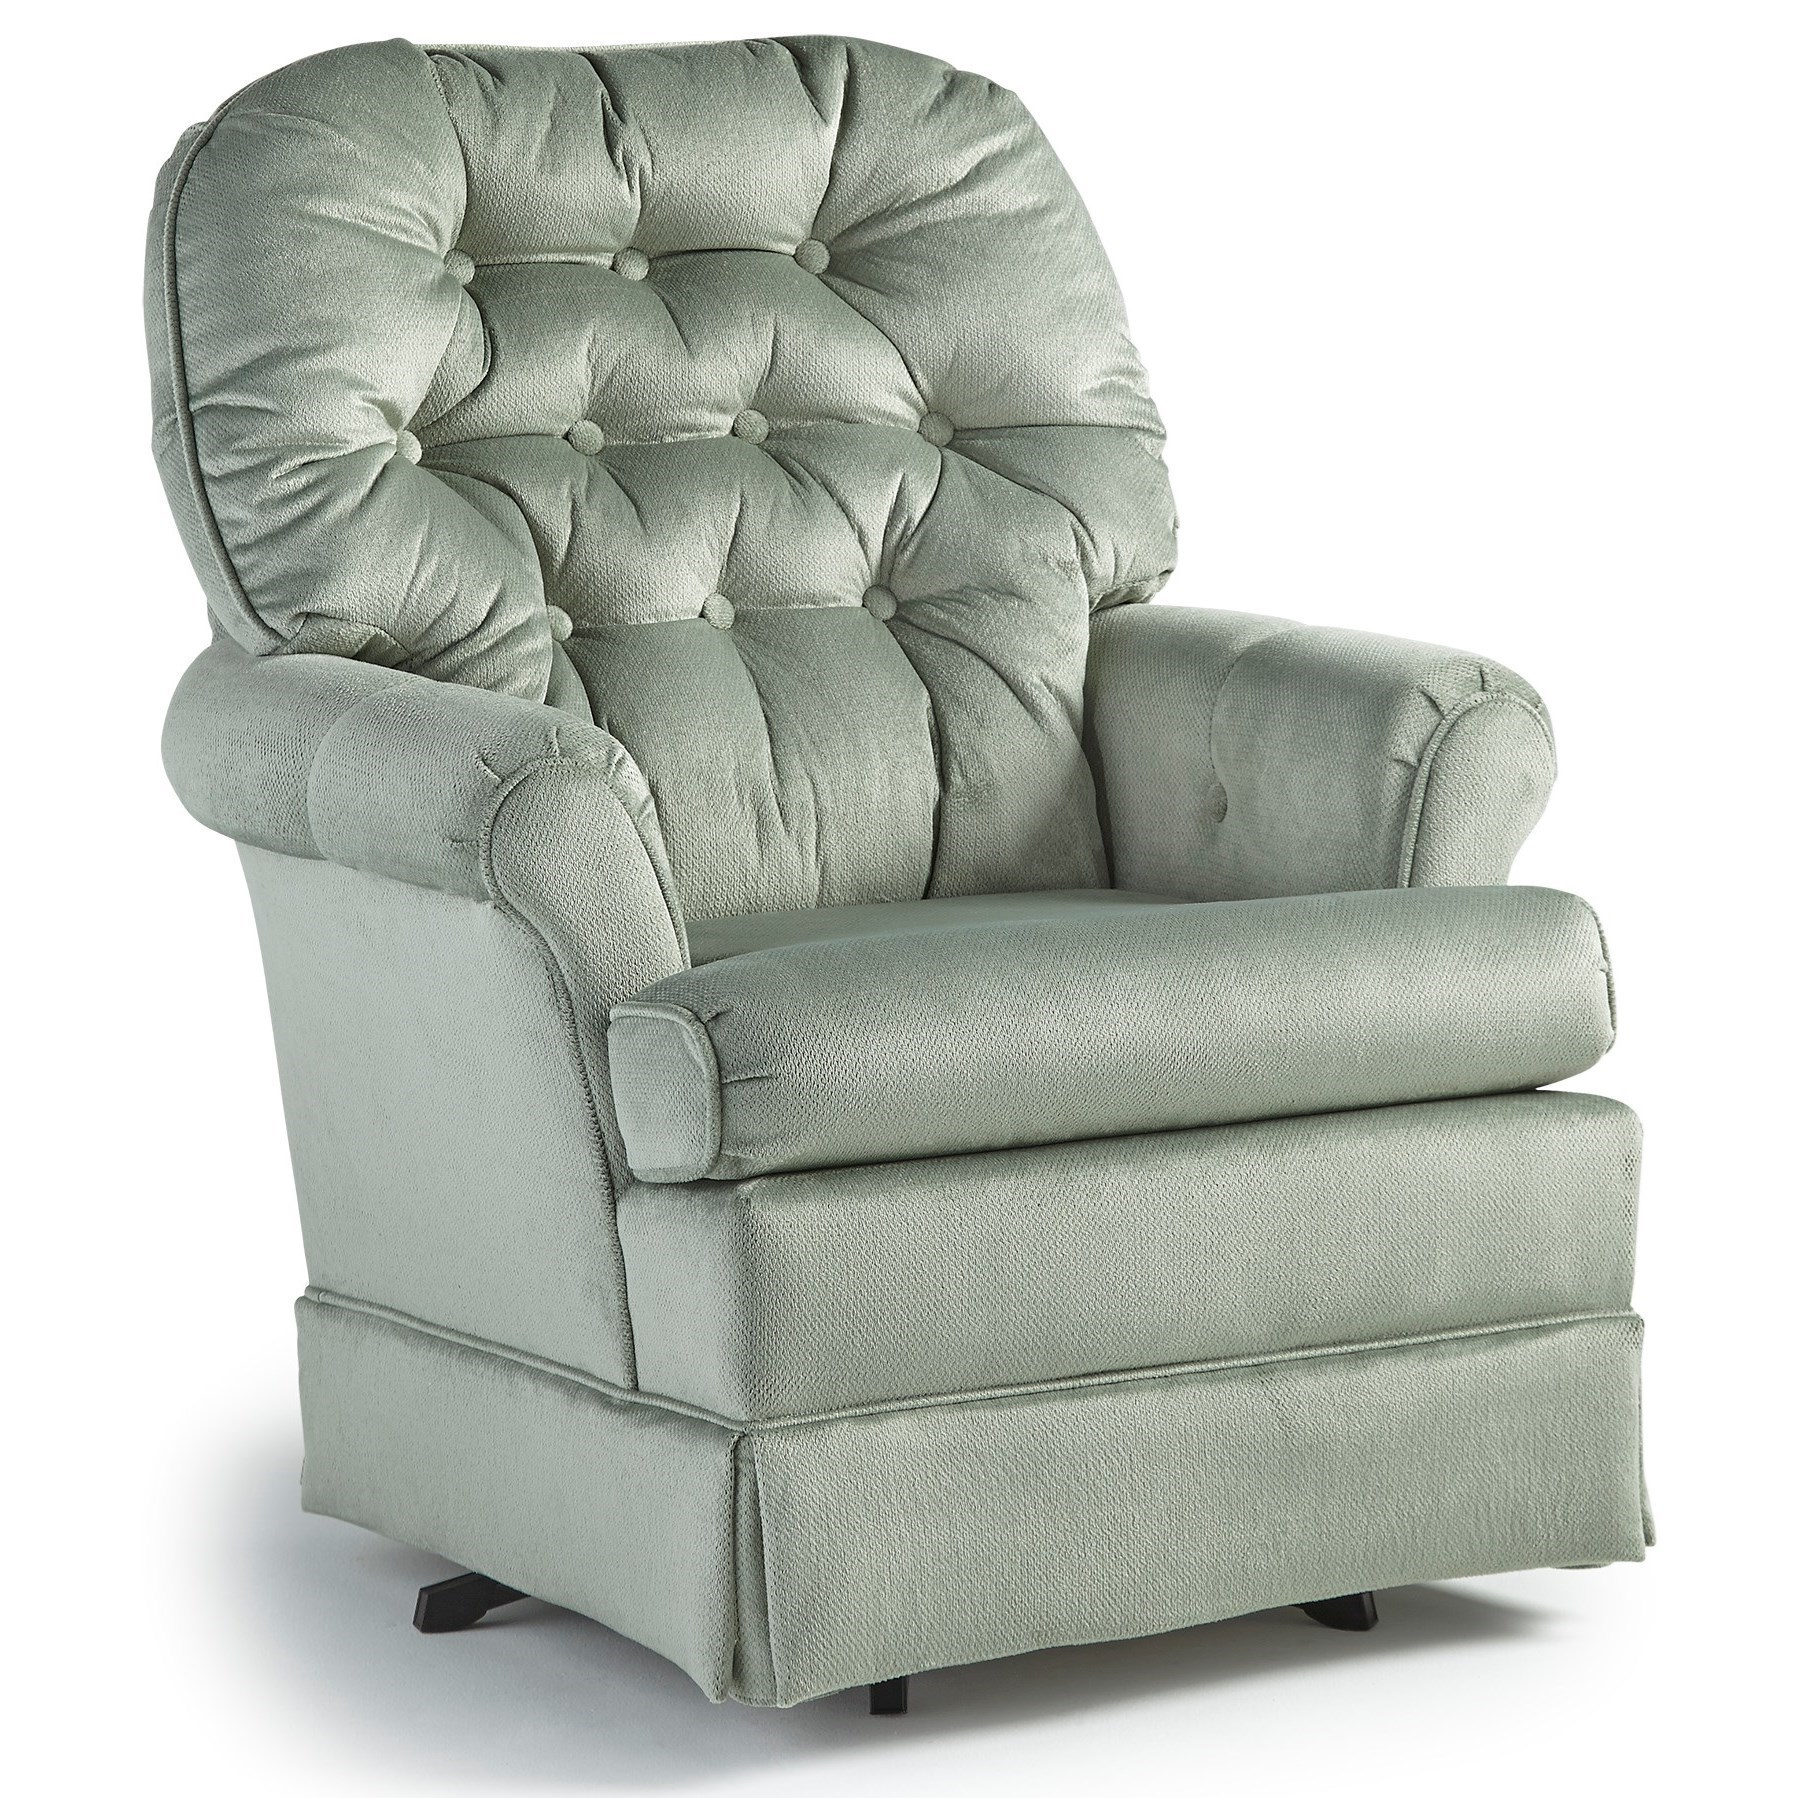 Best Home Furnishings Chairs - Swivel Glide Marla Swivel ...